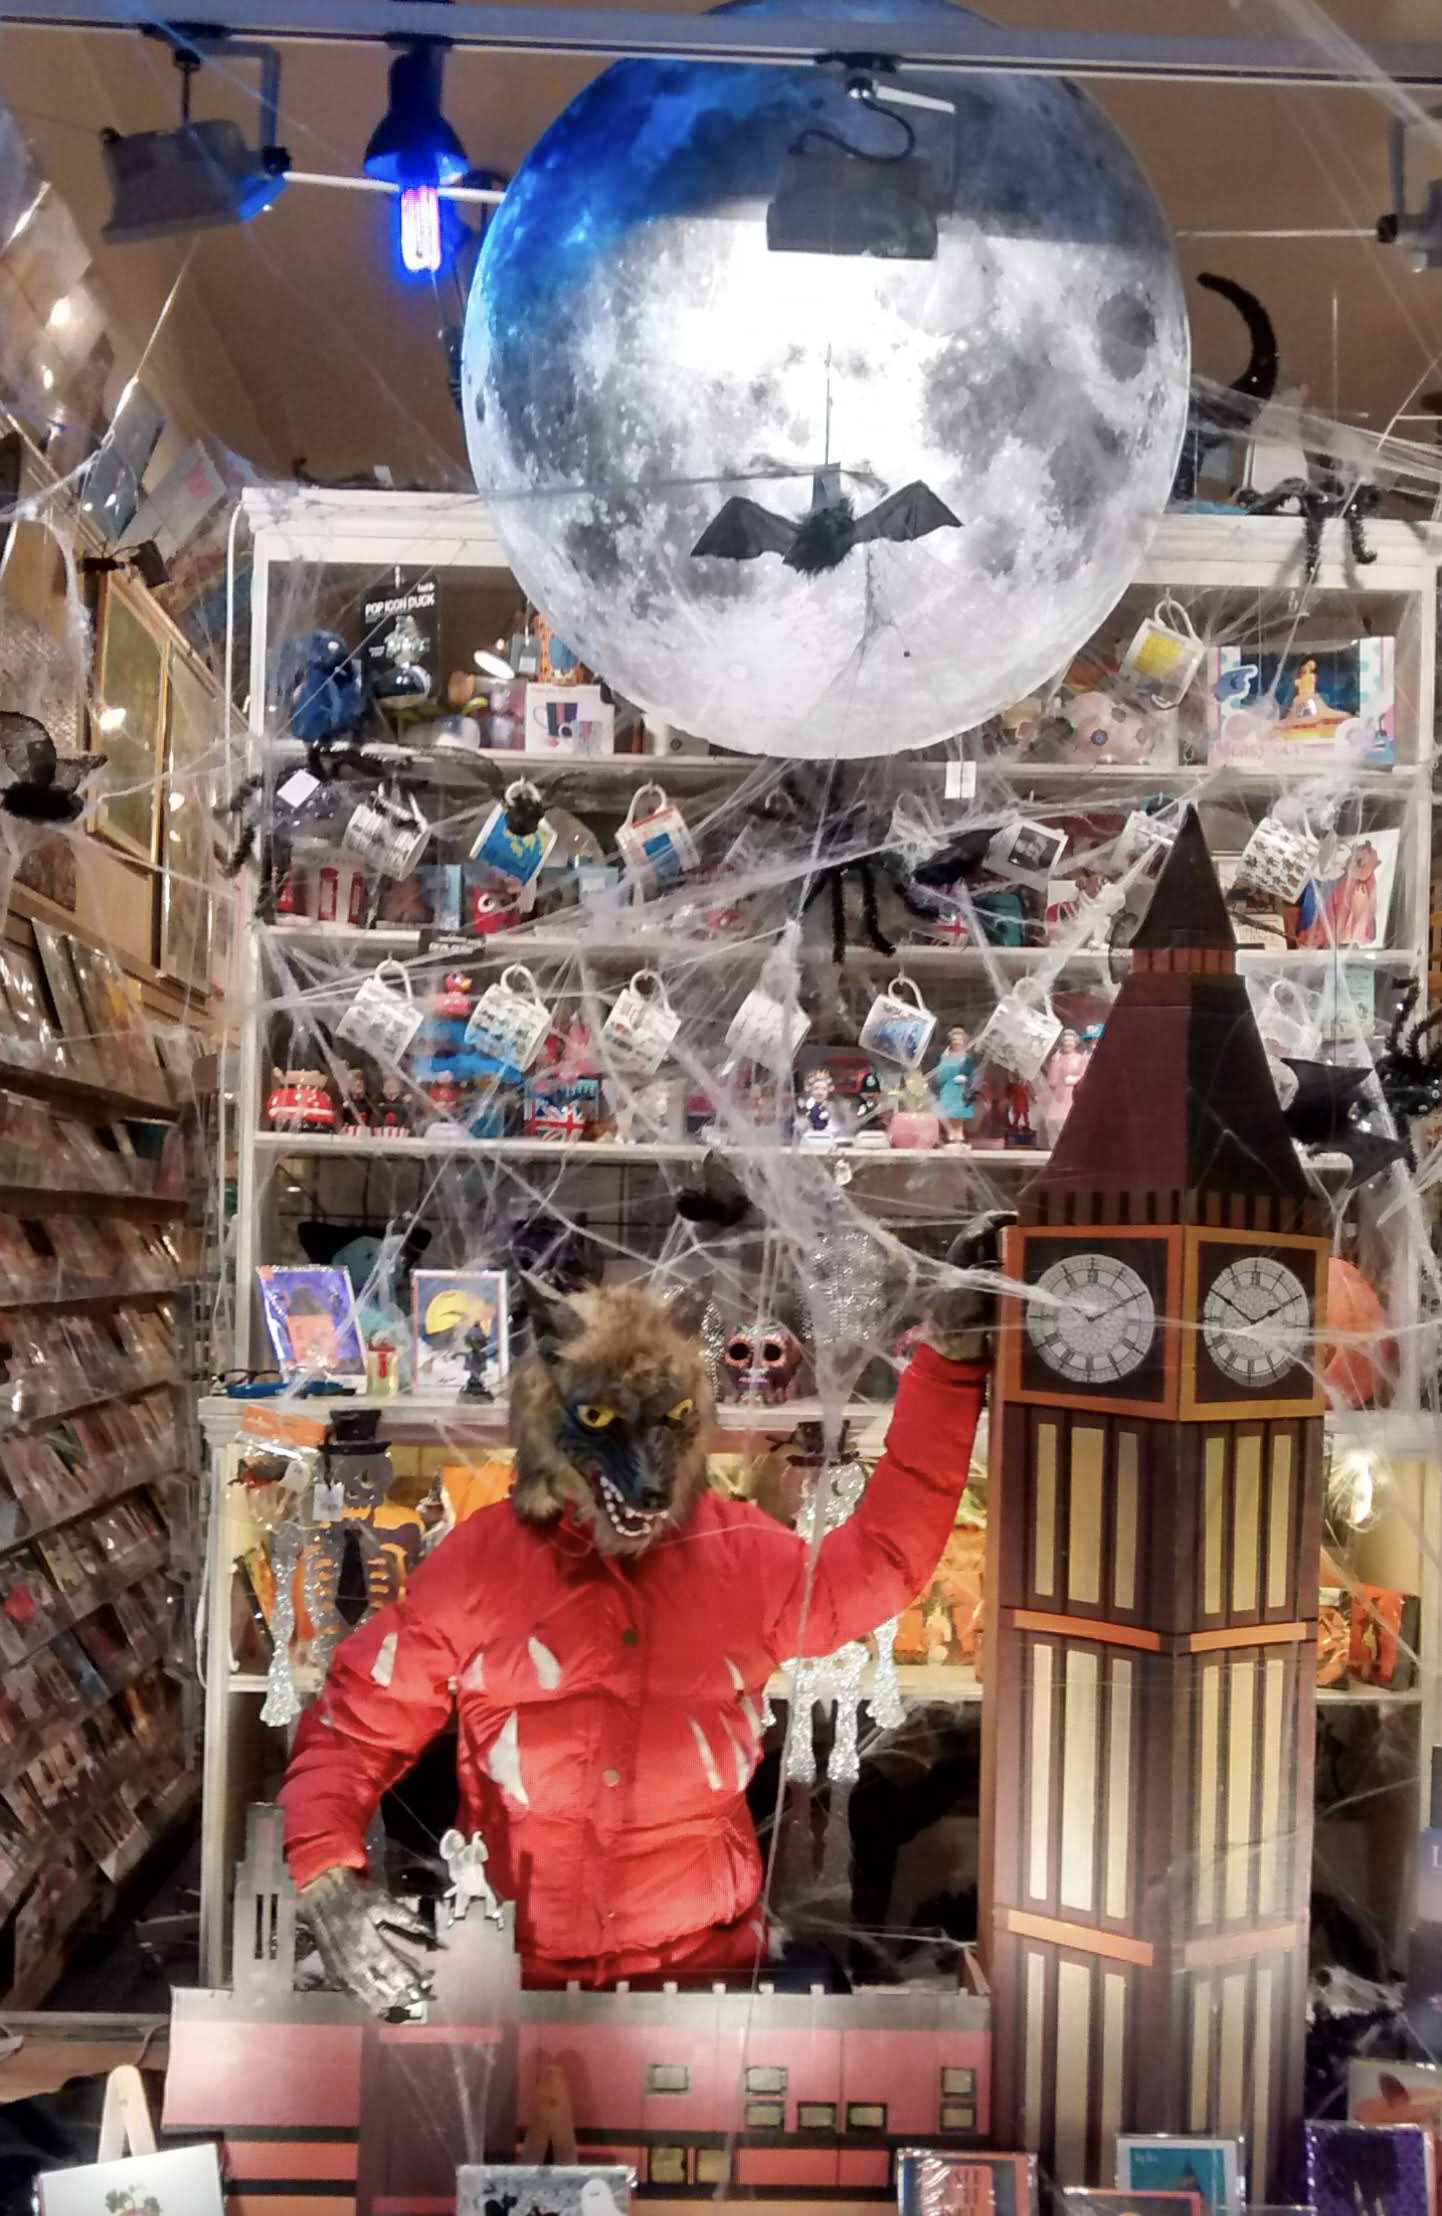 Above: Medici Gallery, Kensington is another indie who put great stall by its Halloween window display.